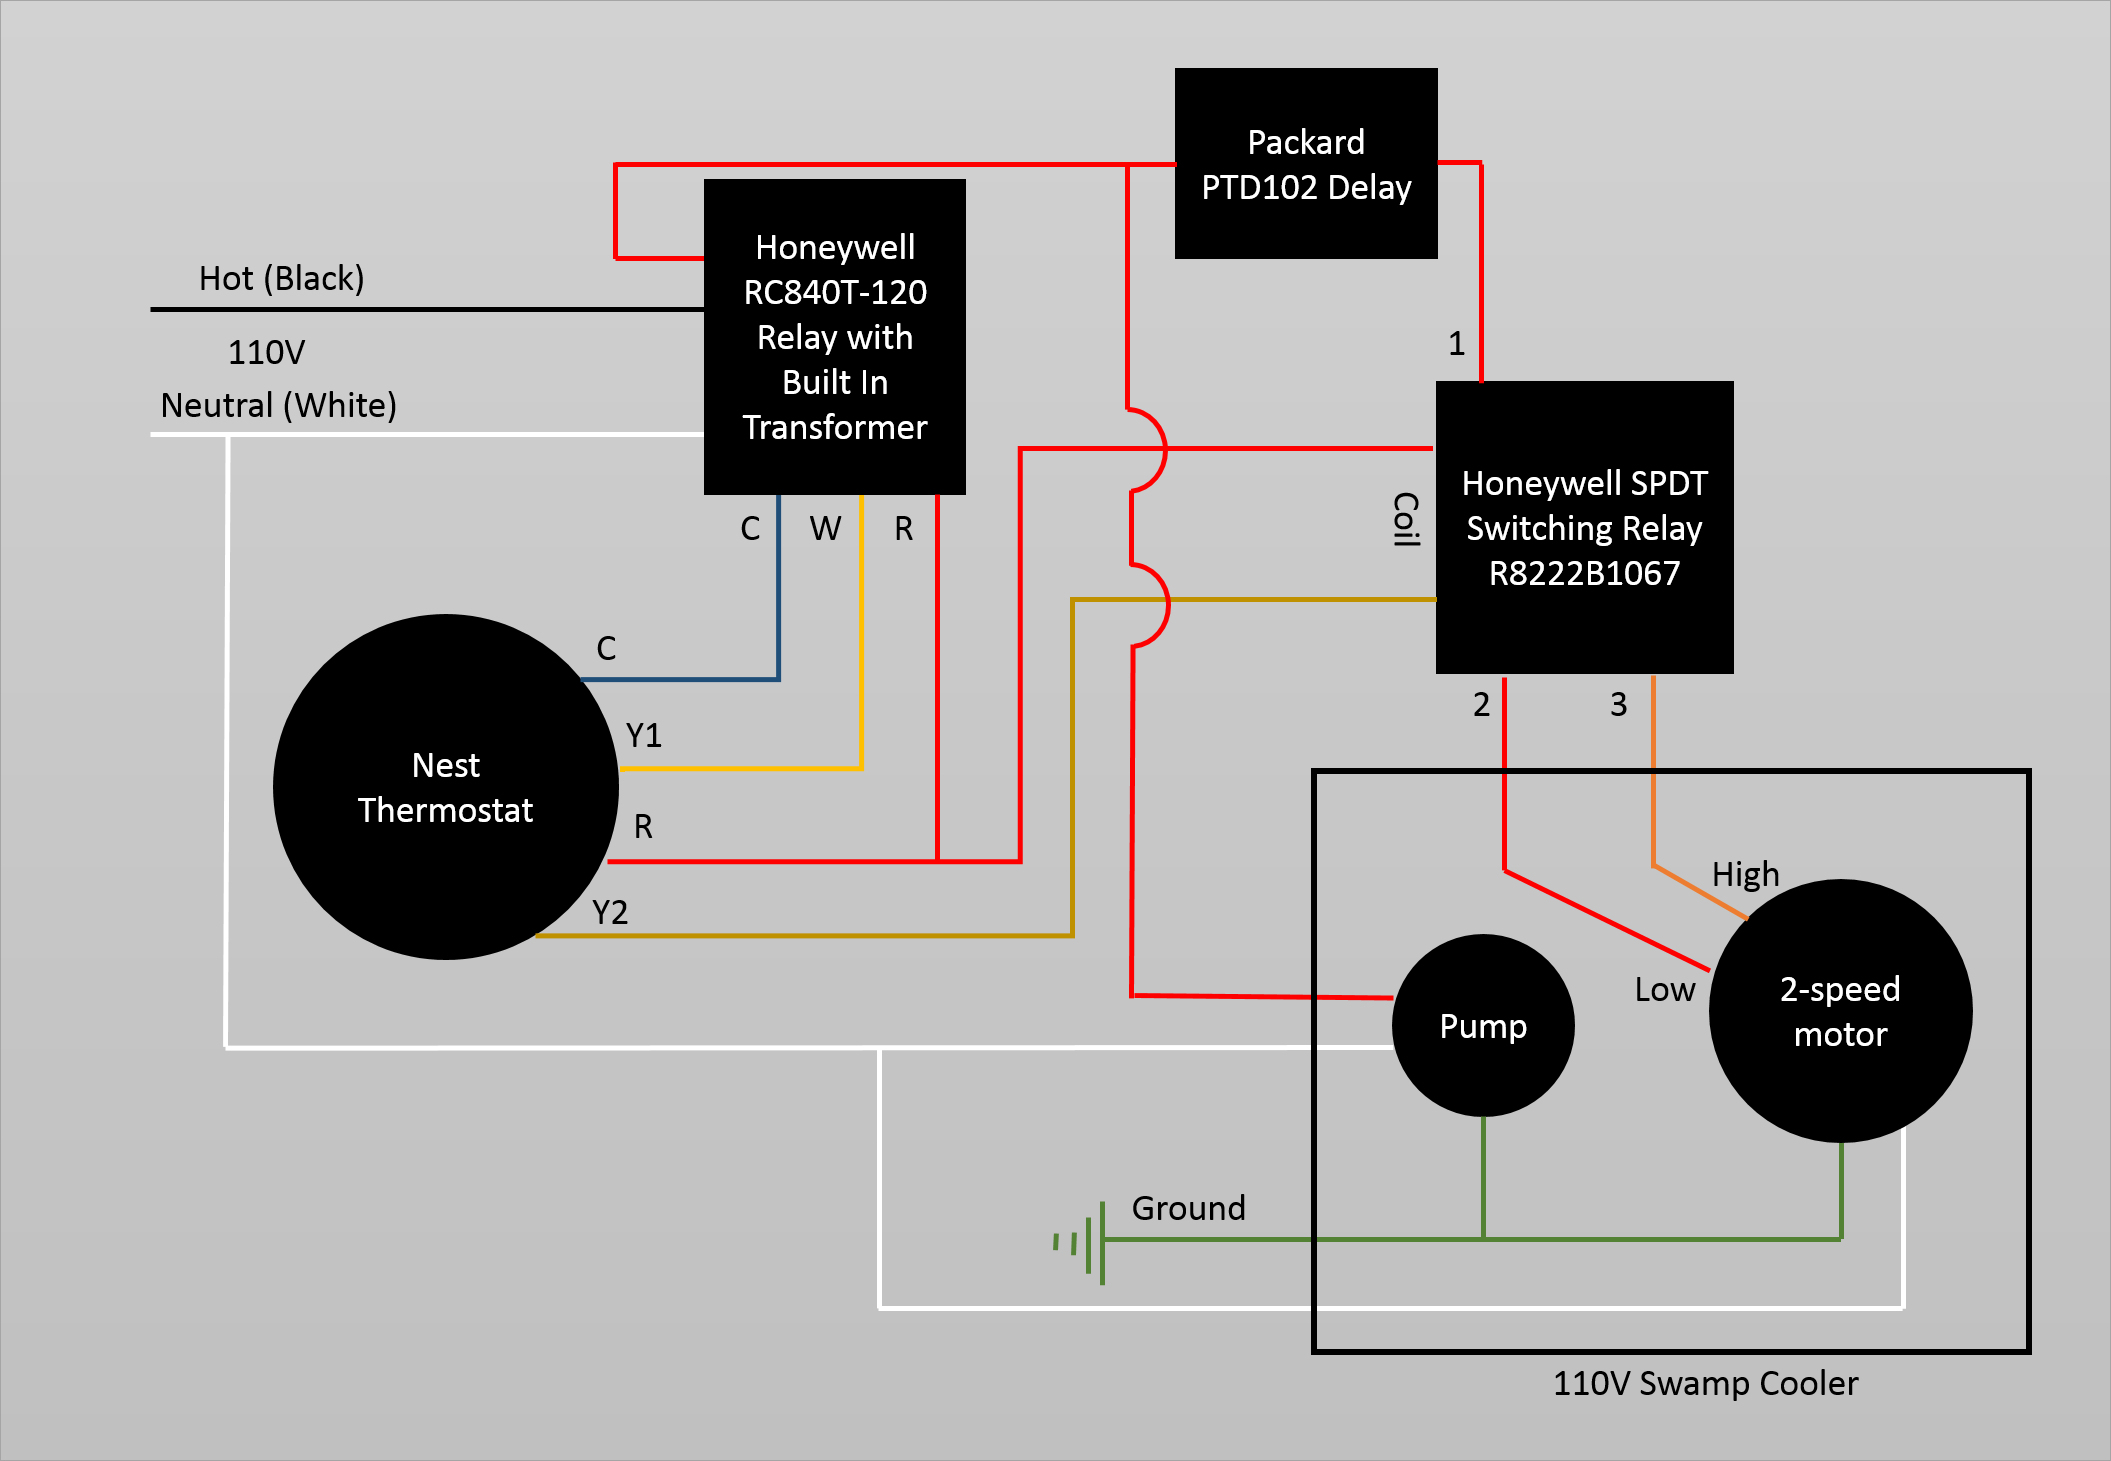 wiring diagram how to hookup as nest thermostat to a. Black Bedroom Furniture Sets. Home Design Ideas